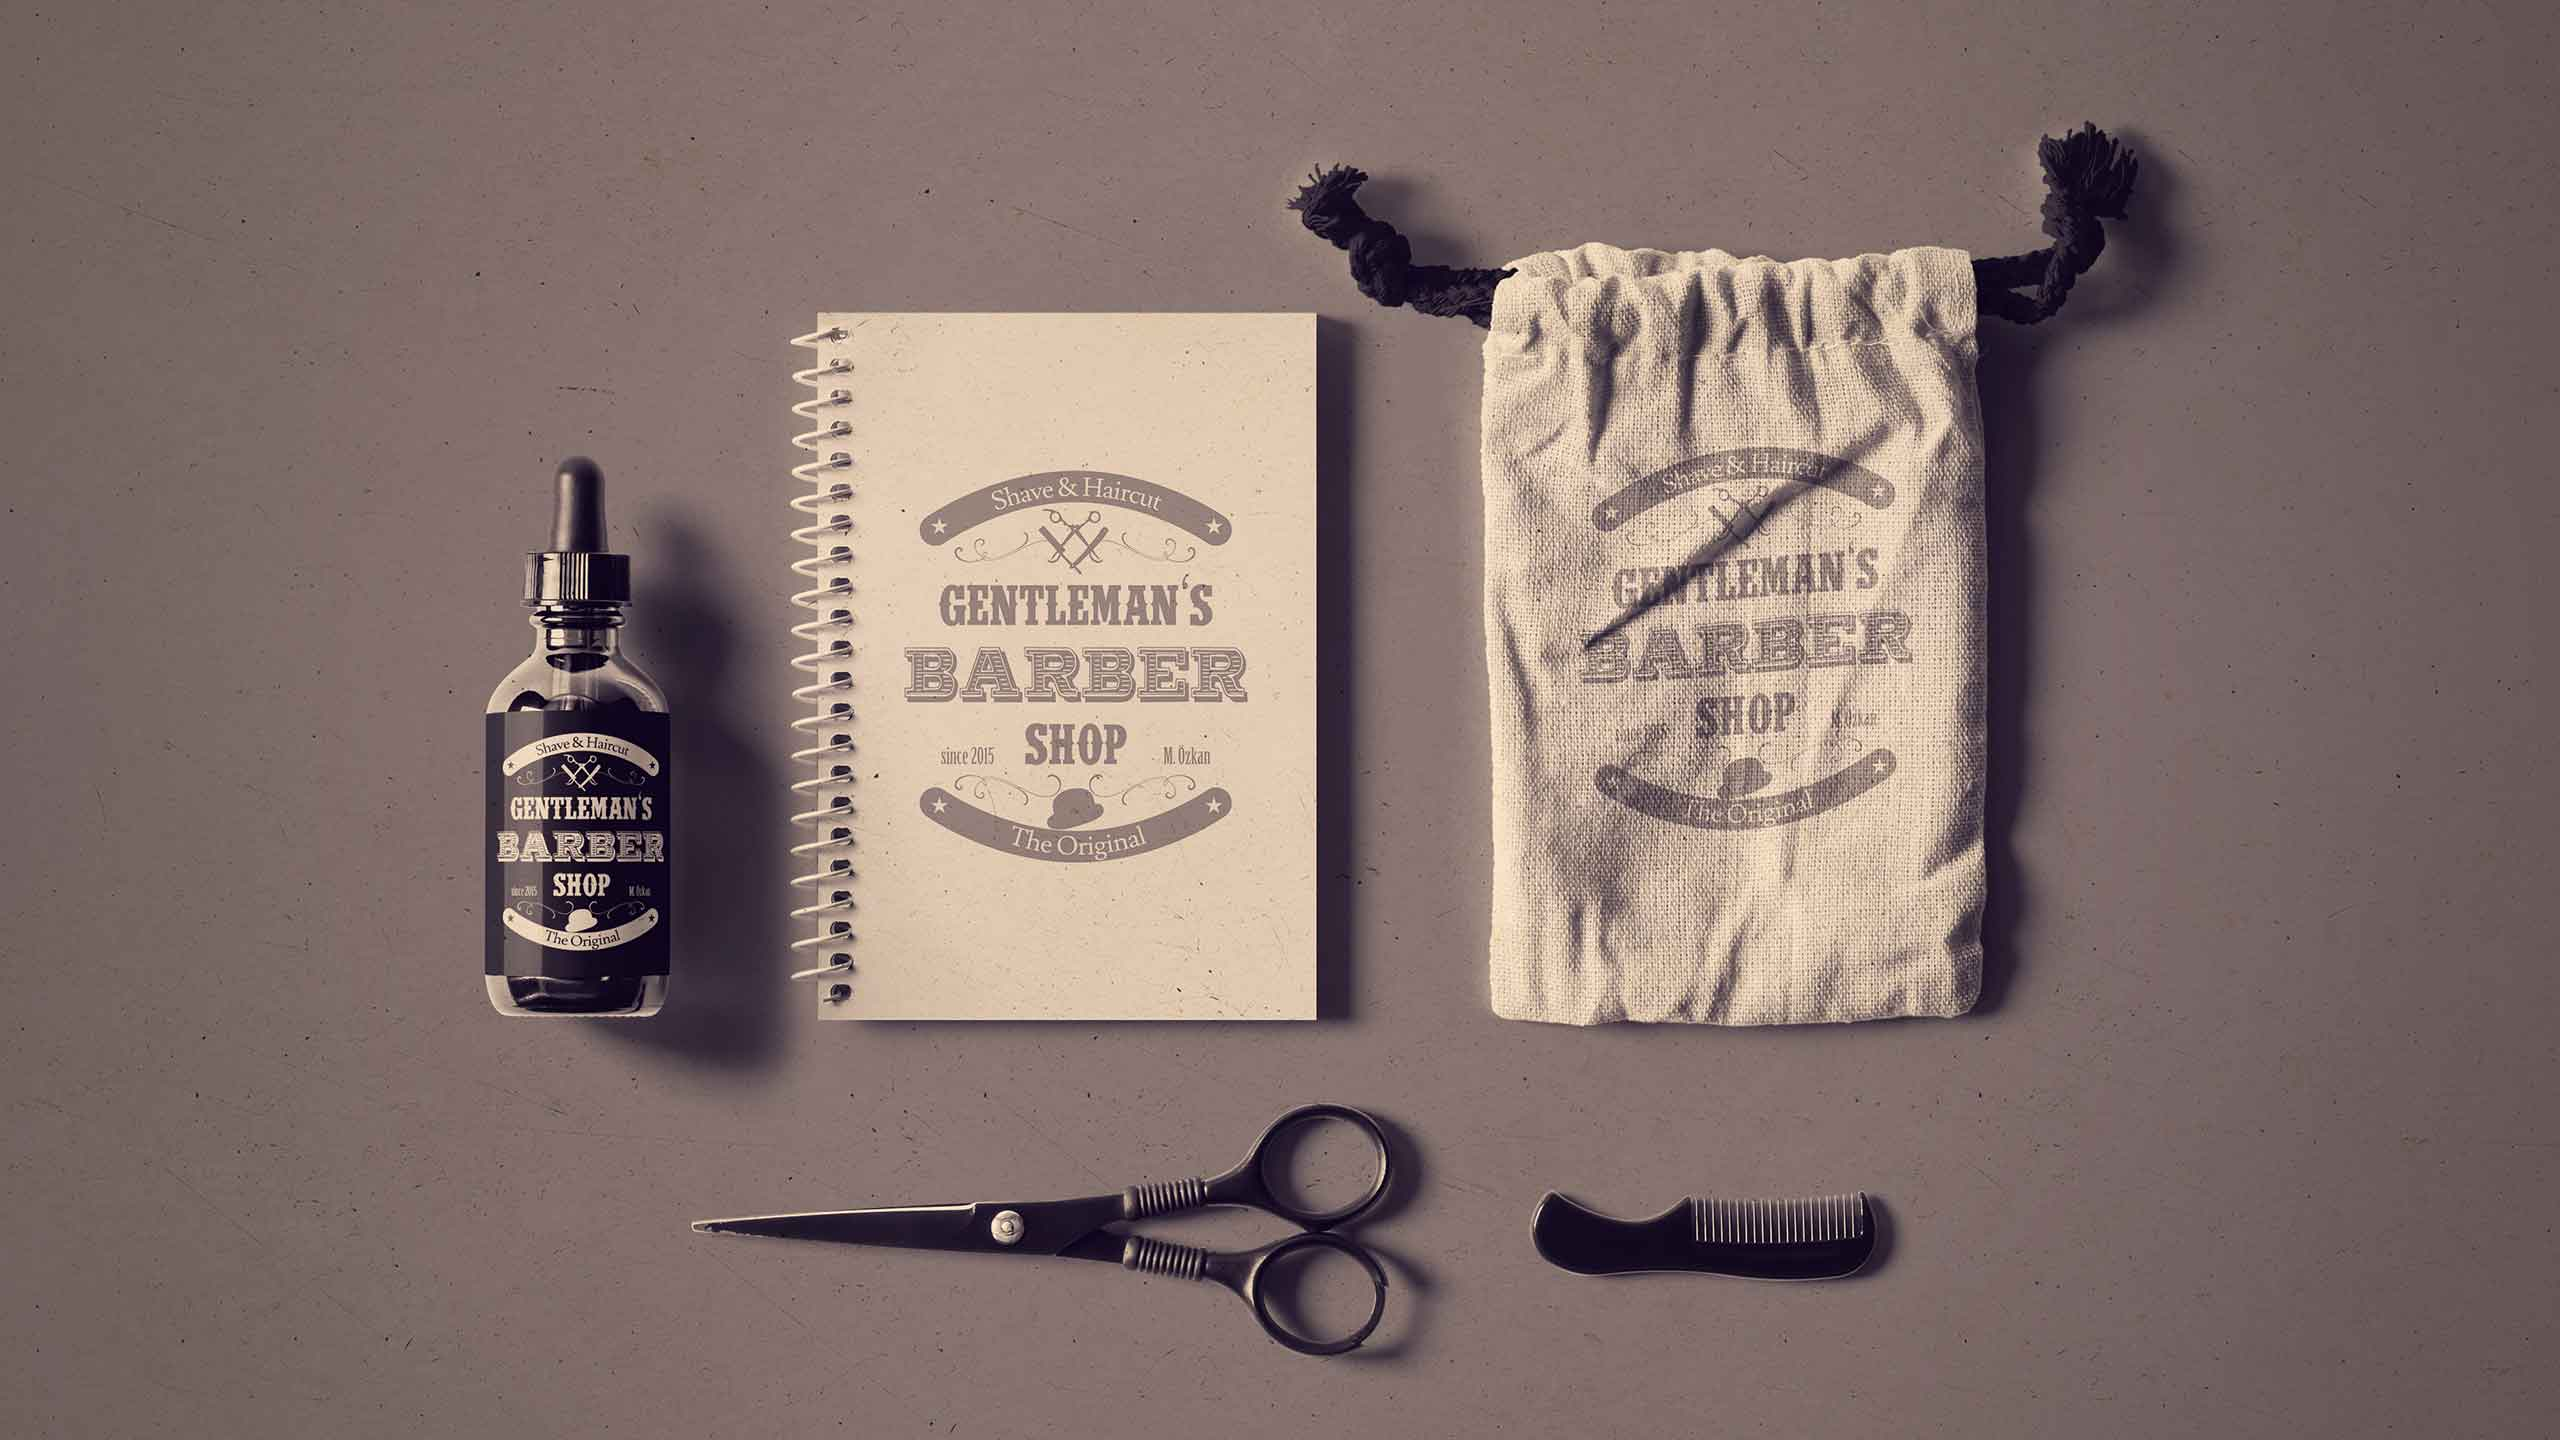 Coup-website-briefpapier-products-barbershop-opt